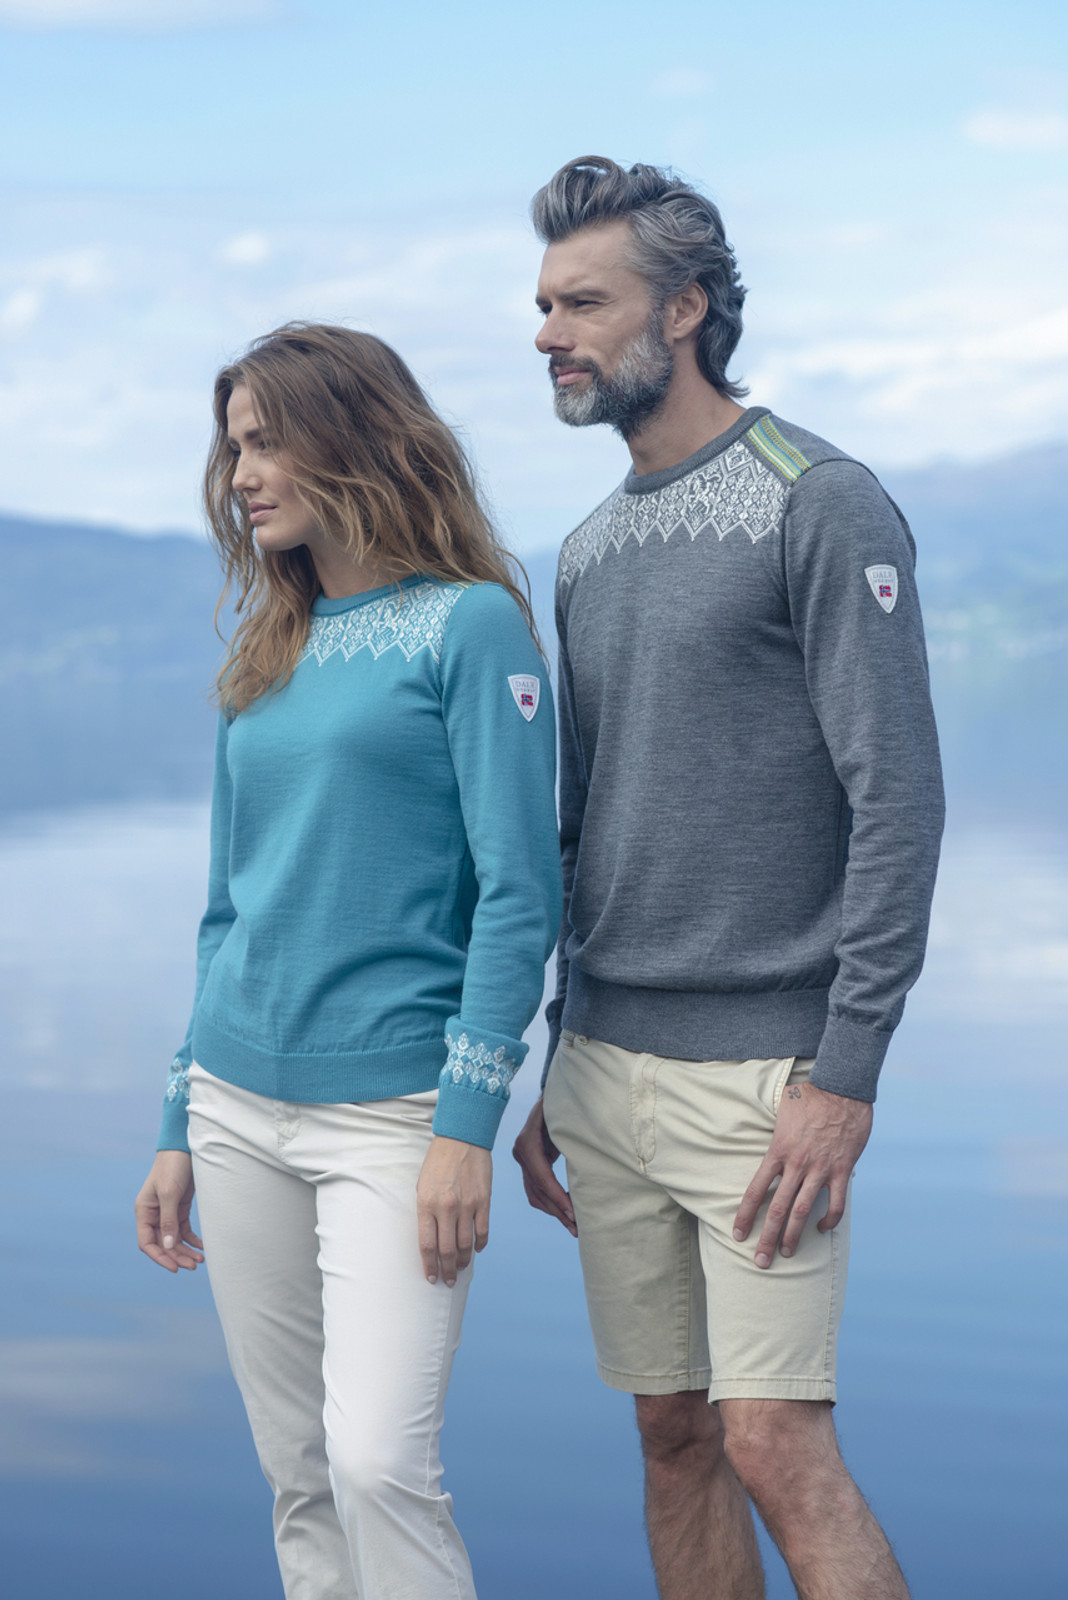 Woman wearing Ladies Dale of Norway Lillehammer Sweater in Turquoise, 93261-G and Man wearing Mens Dale of Norway Lillehammer Sweater in Smoke 93271-E